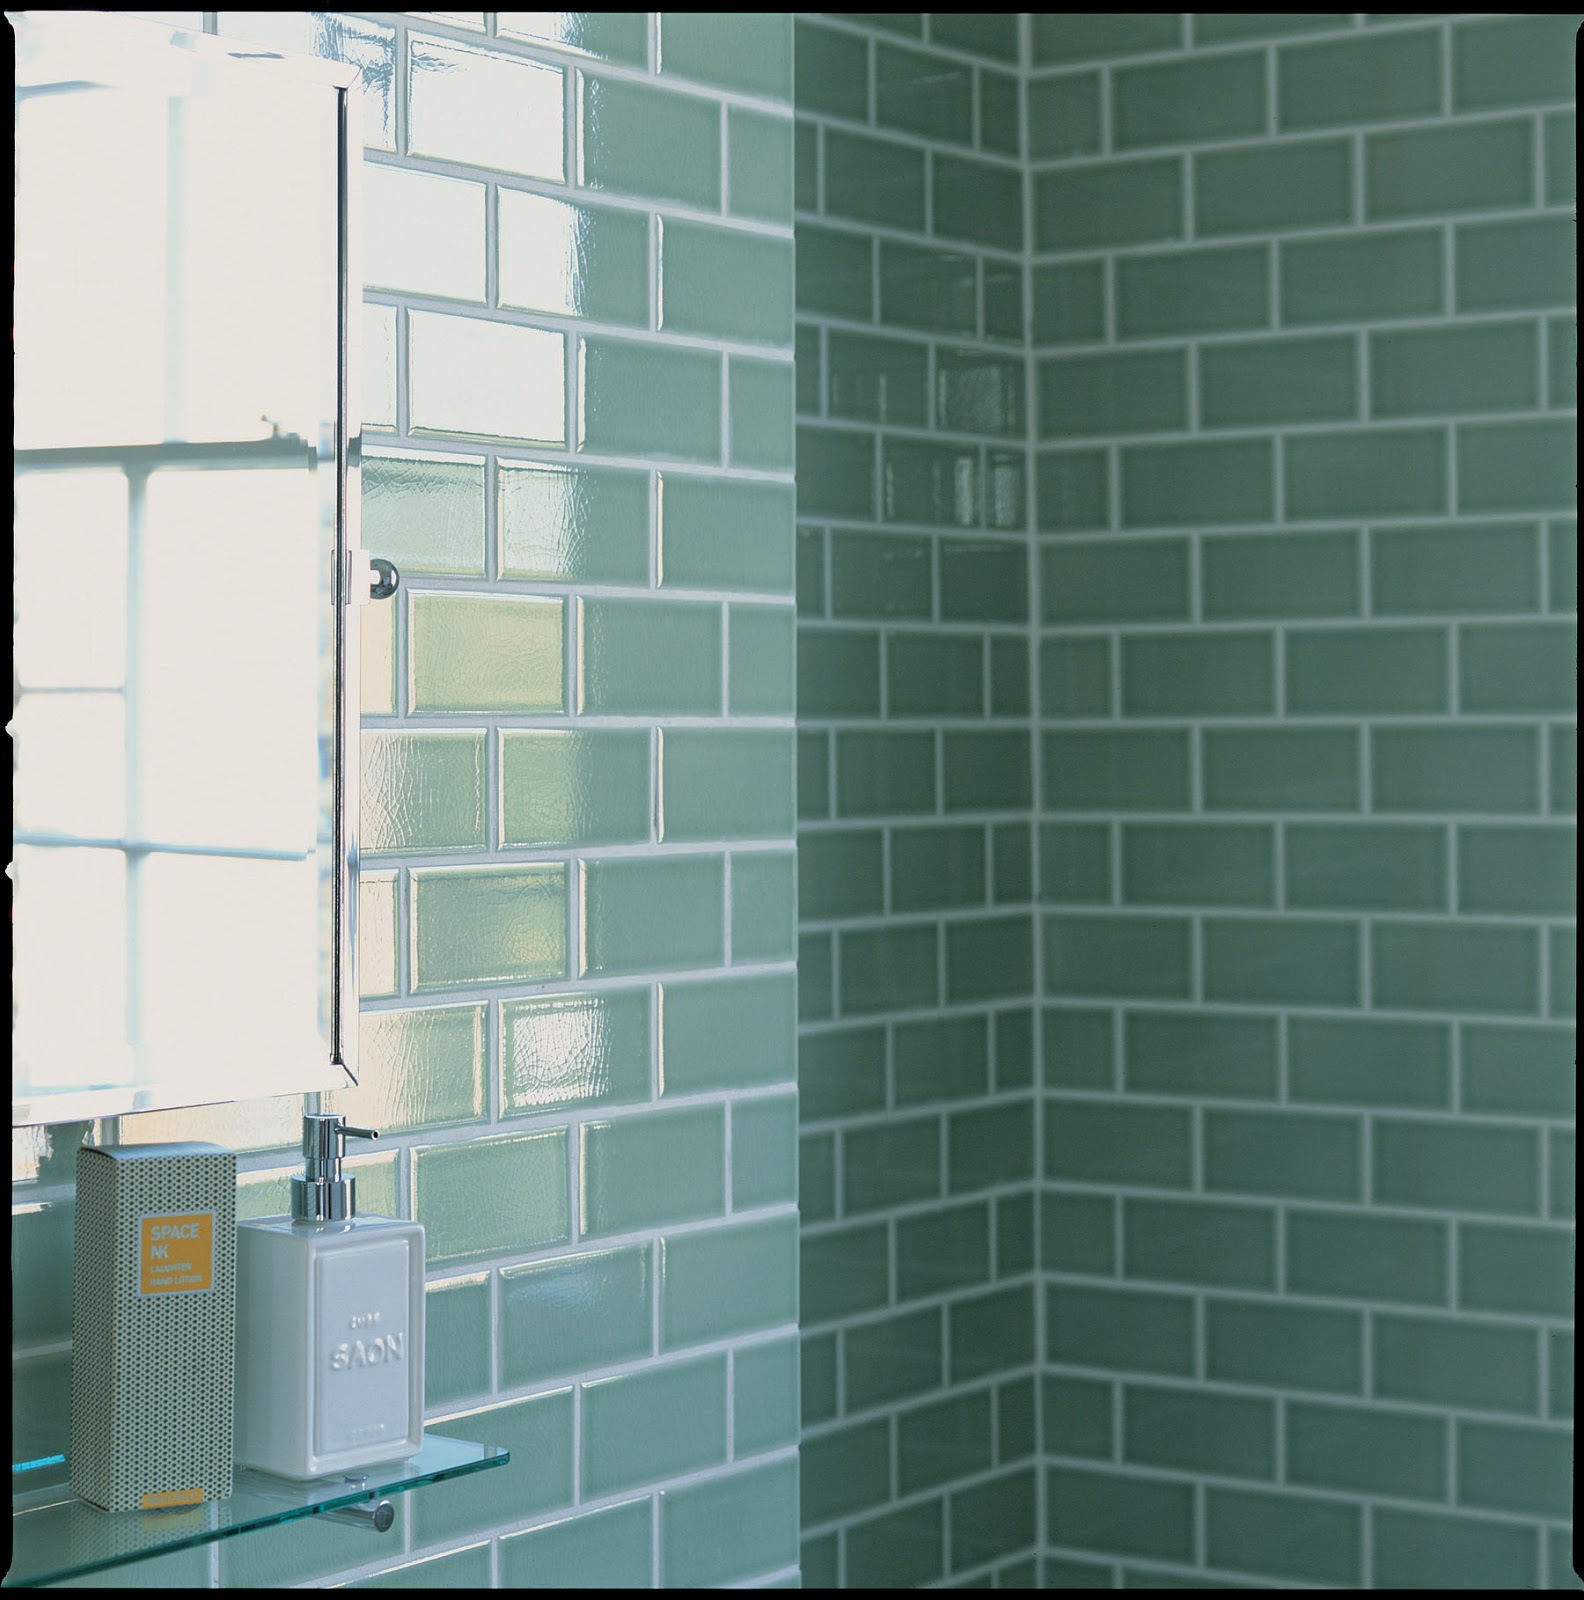 Bathroom tile designs.